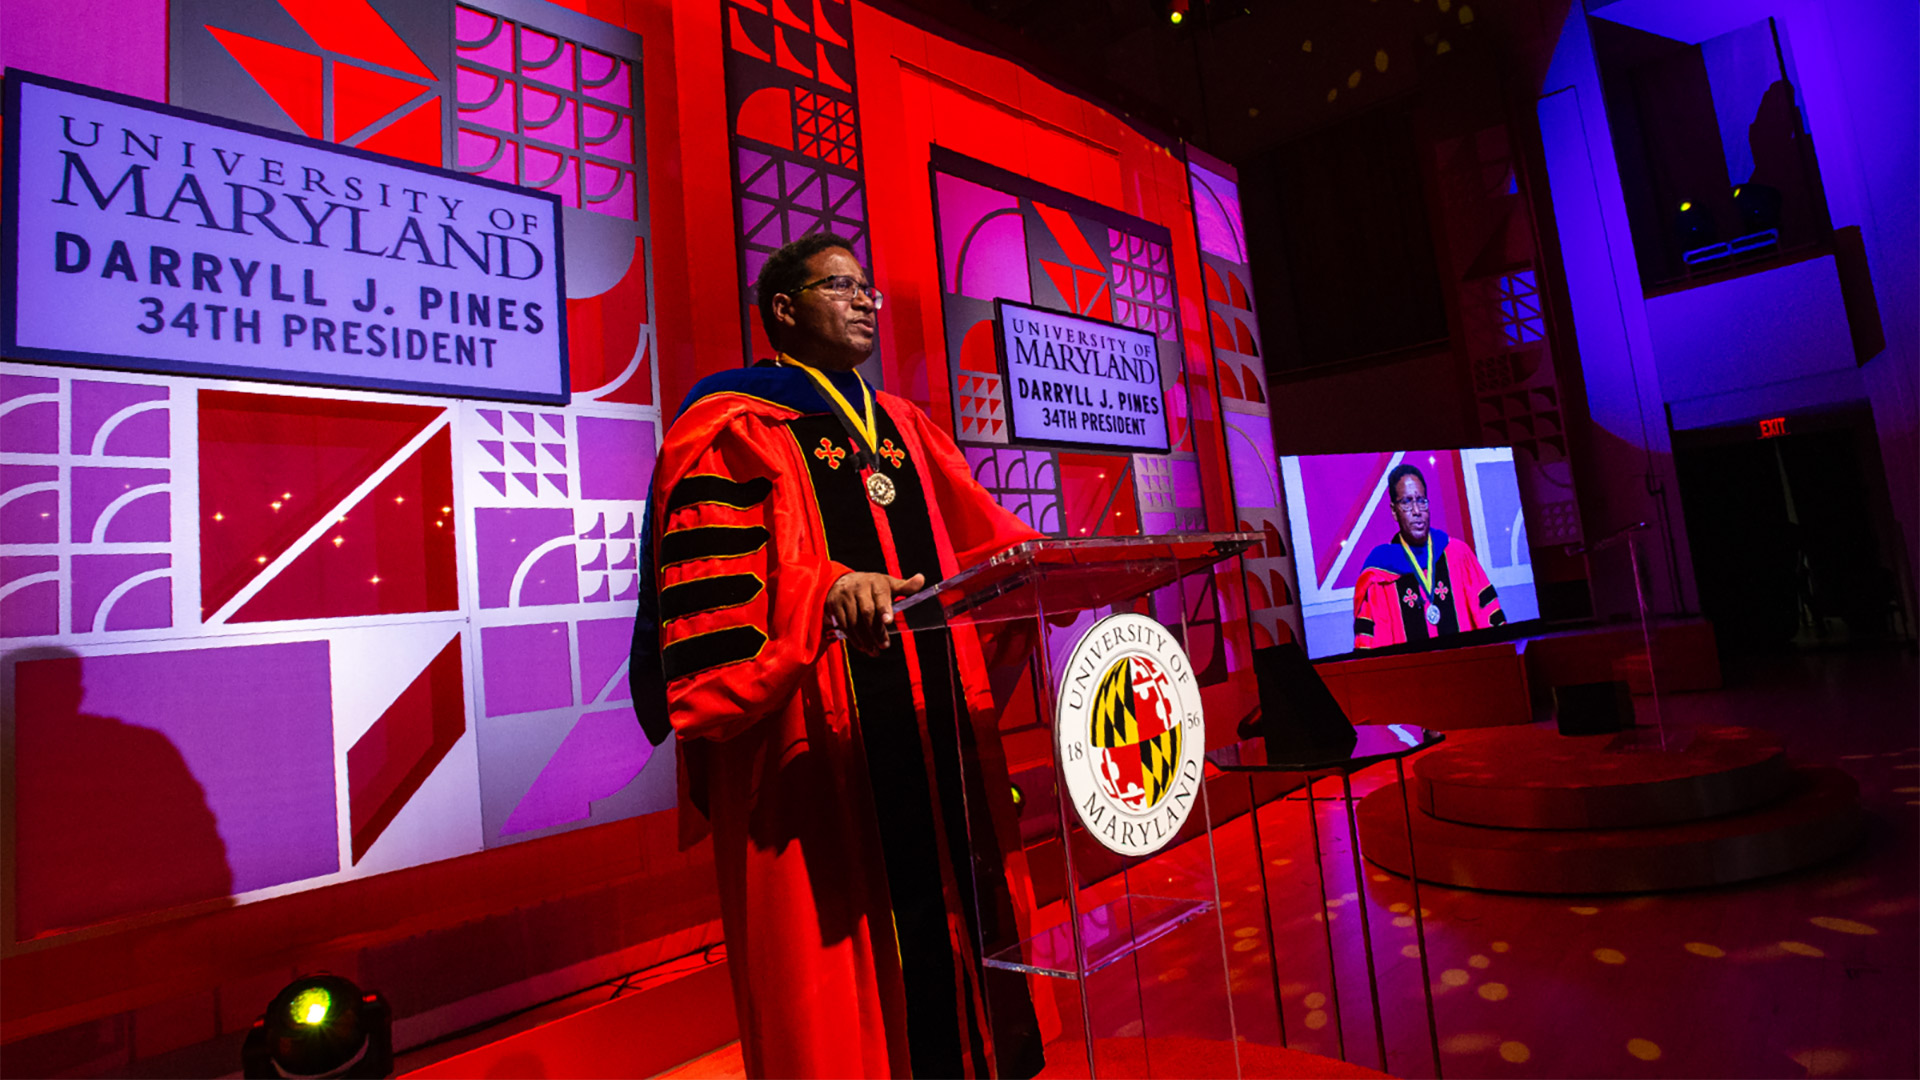 President Darryll Pines Presents His Vision and Bold Actions for UMD